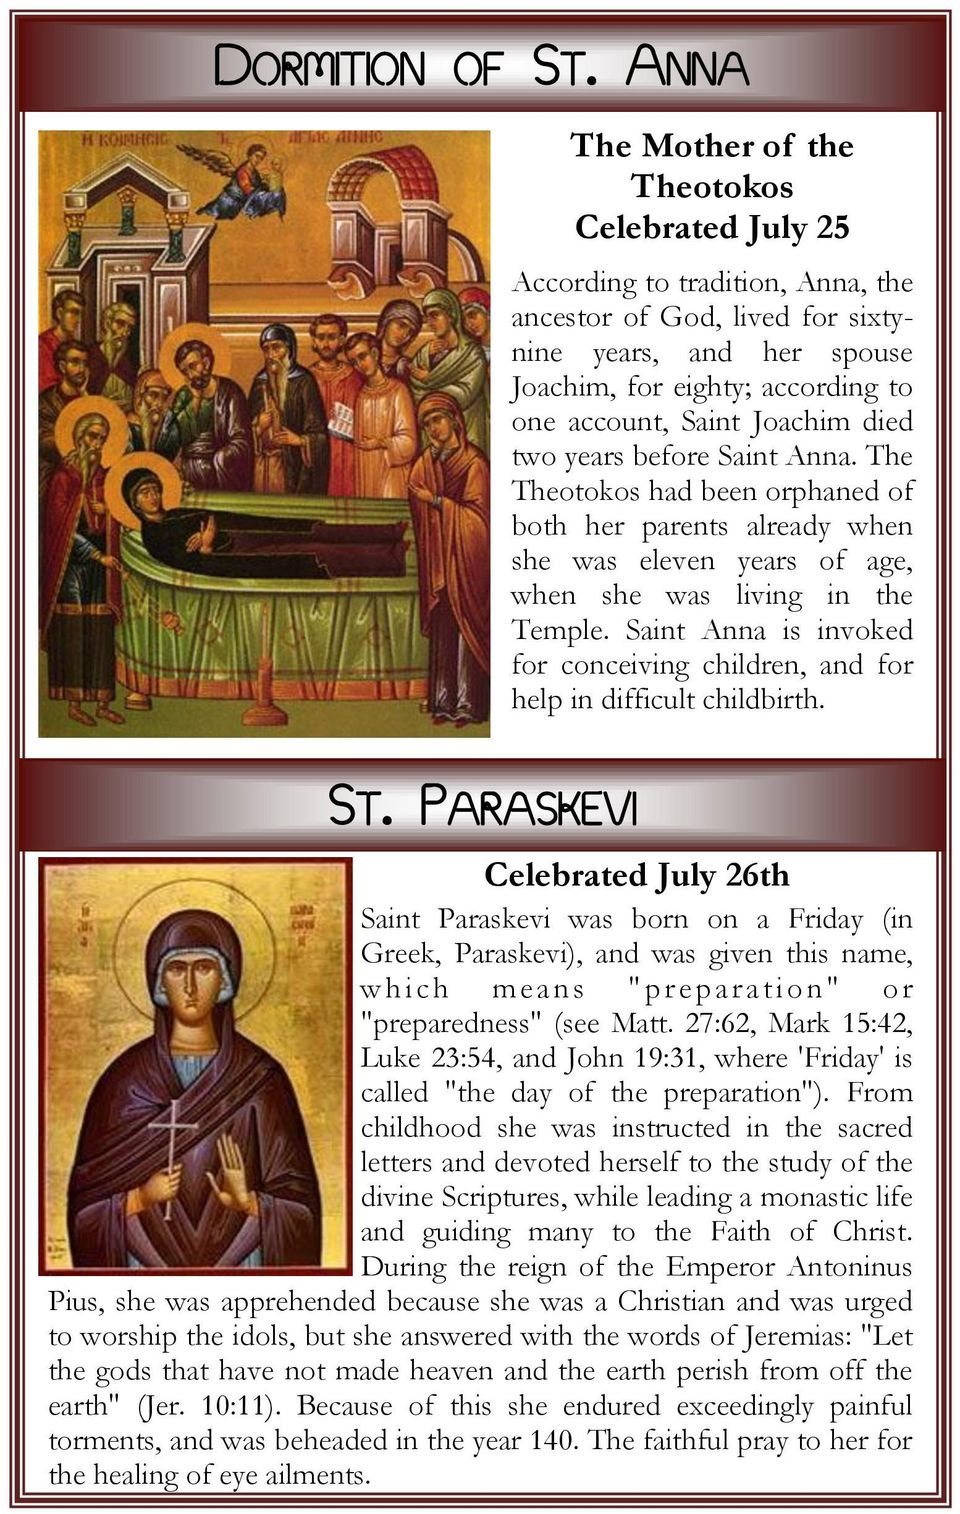 Saint Joachim died two years before Saint Anna. The Theotokos had been orphaned of both her parents already when she was eleven years of age, when she was living in the Temple.